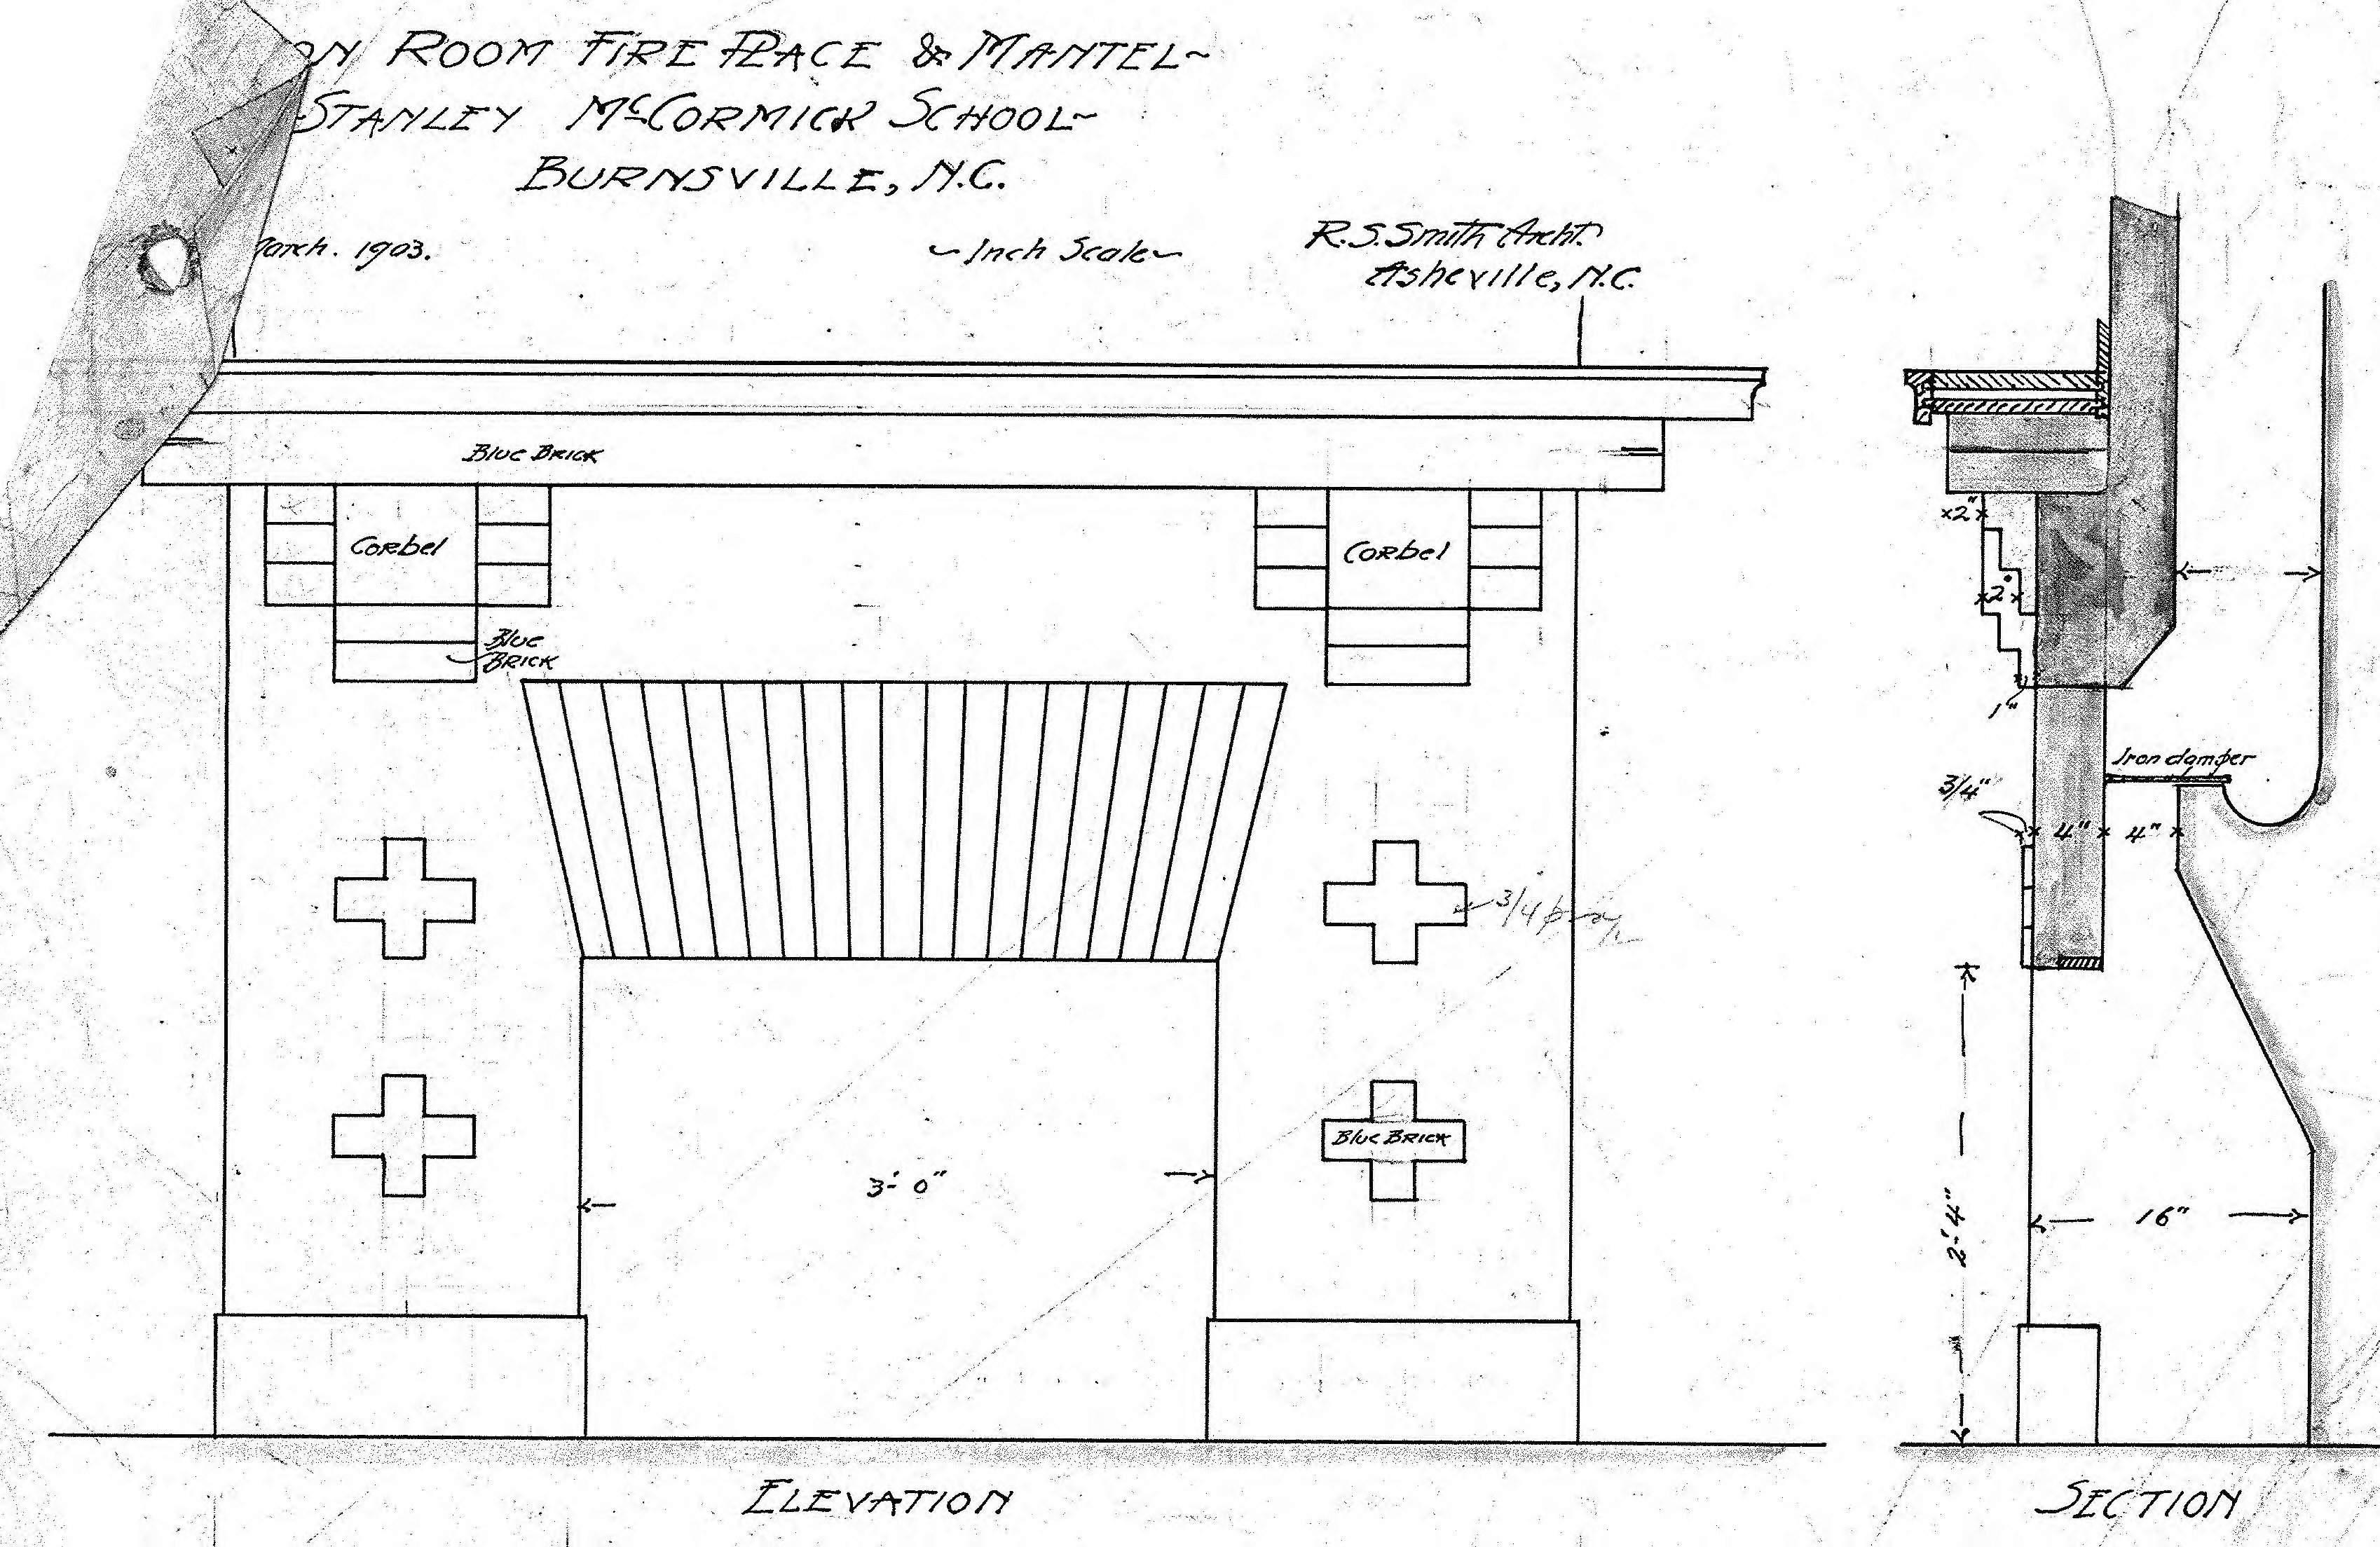 Fireplace Construction Drawings